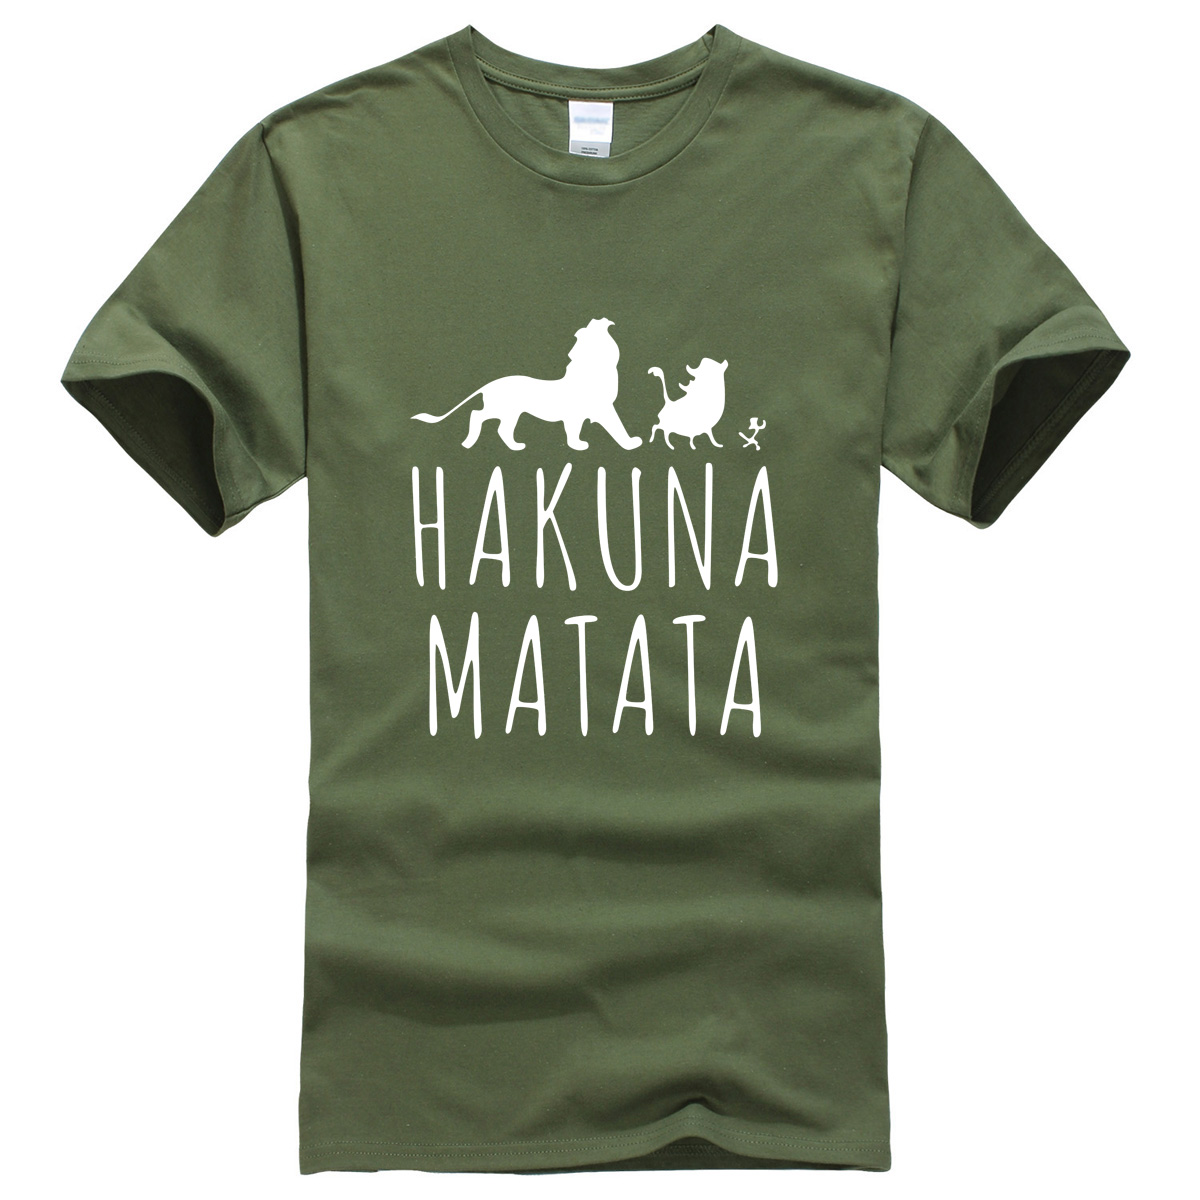 Men's T-shirts 2019 Summer Cotton O-neck Fashion Casual Tshirt HAKUNA MATATA Hipster Streetwear Brand-clothing T-shirt Men Tops